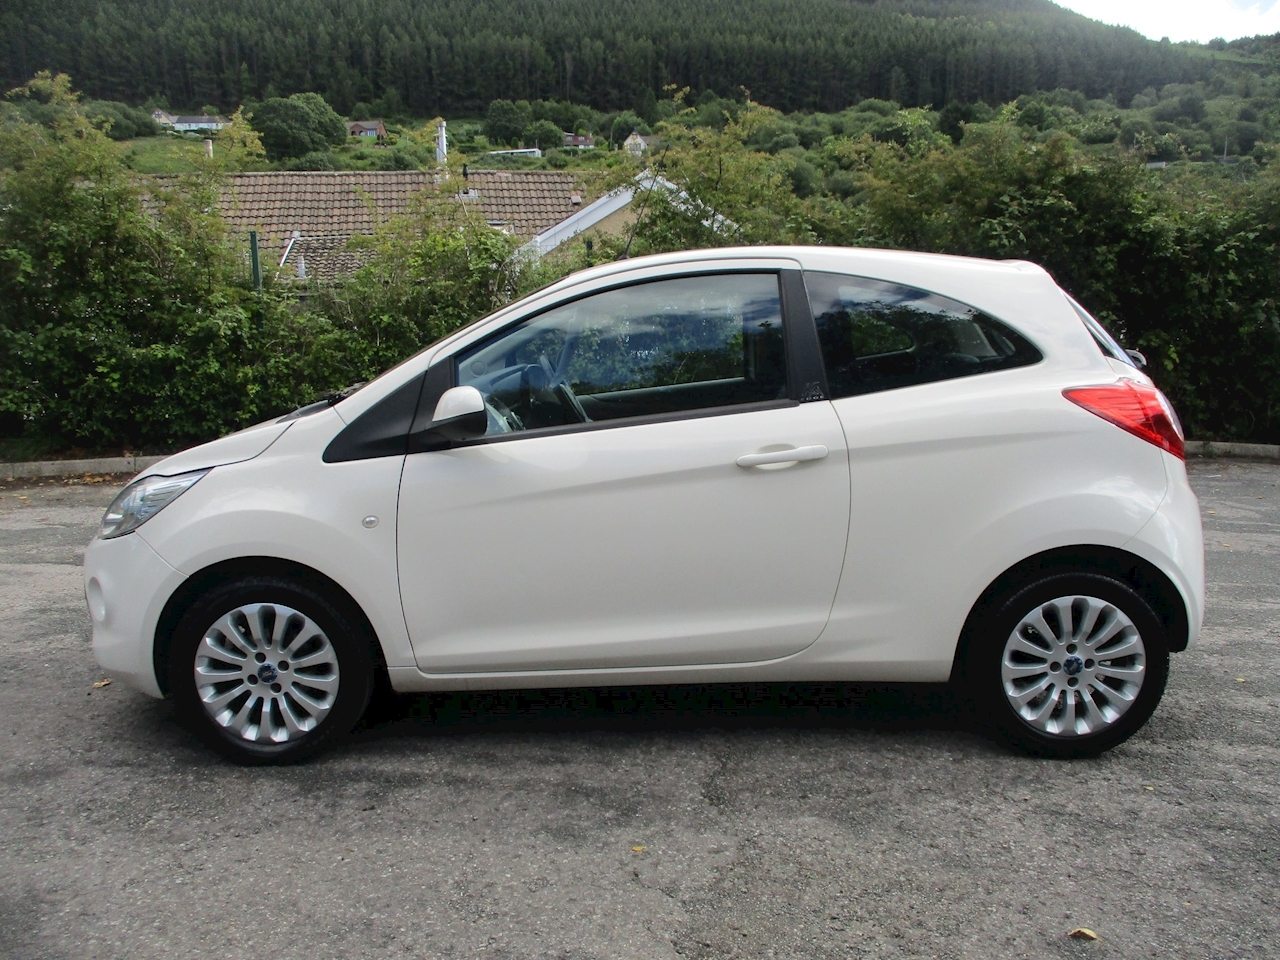 Ka Edge Hatchback 1.2 Manual Petrol